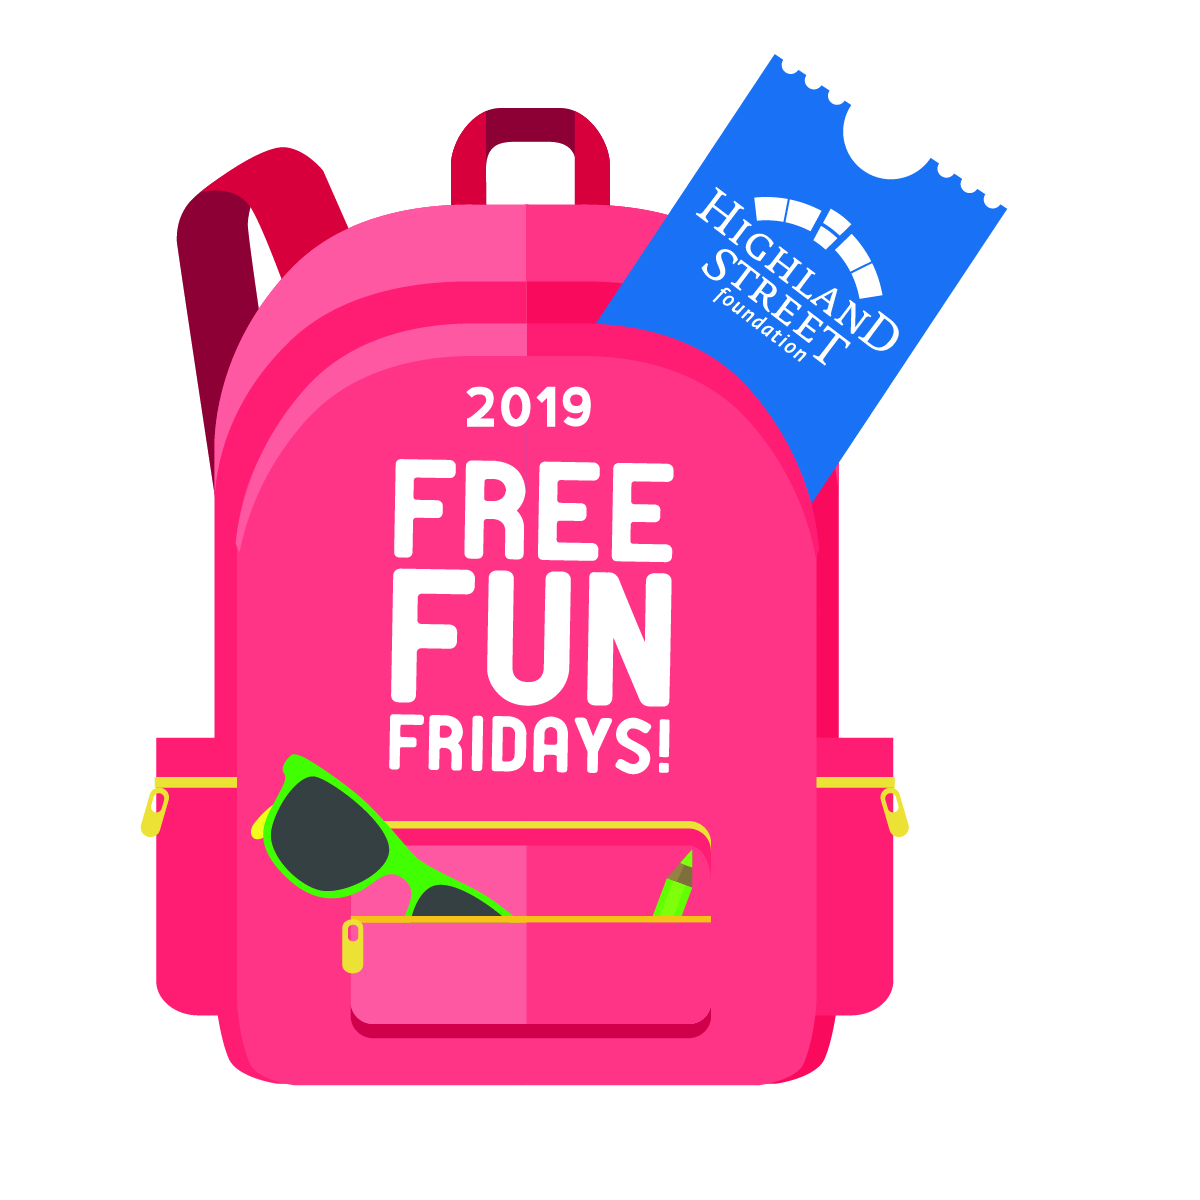 - We're excited to announce that we are among the 100 institutions across Massachusetts participating in this year's Free Fun Friday initiative, thanks to our partnership with the Highland Street Foundation Admission will be free on August 30th. We look forward to seeing you! For more info, visit:http://www.highlandstreet.org/programs/free-fun-fridays